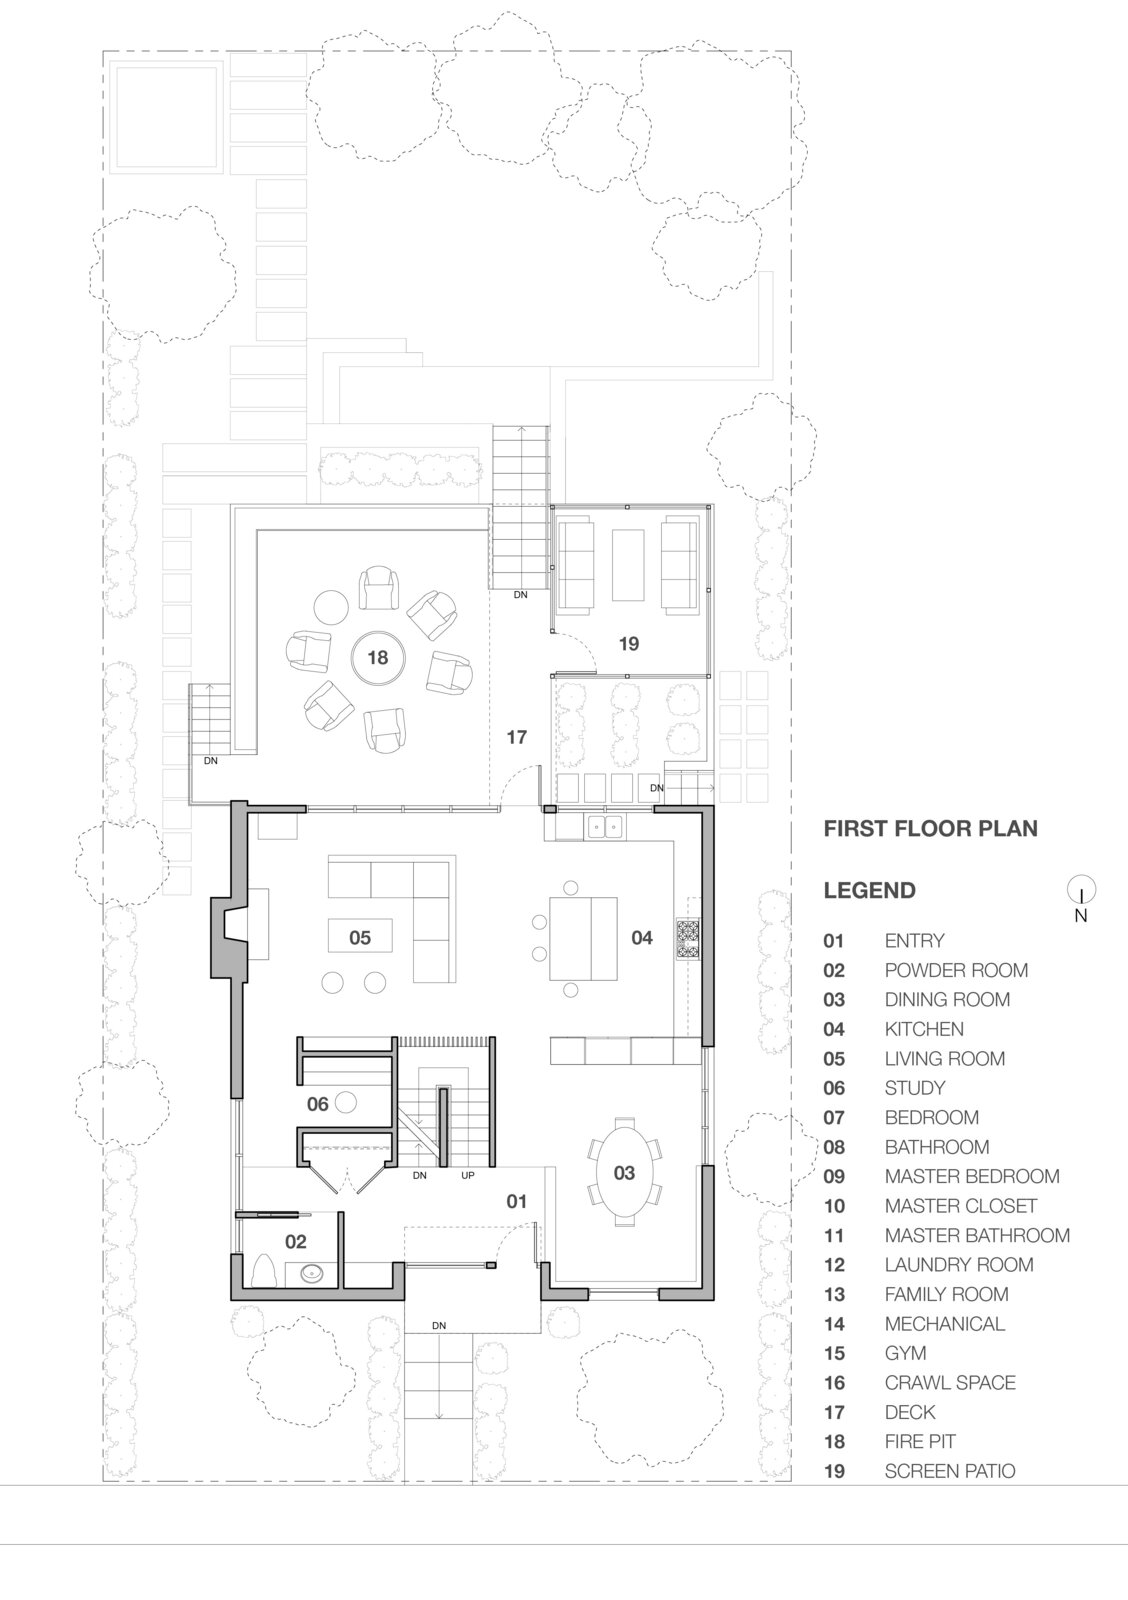 First floor plan of Stephenson House by Assembledge+ and Fowles Studio